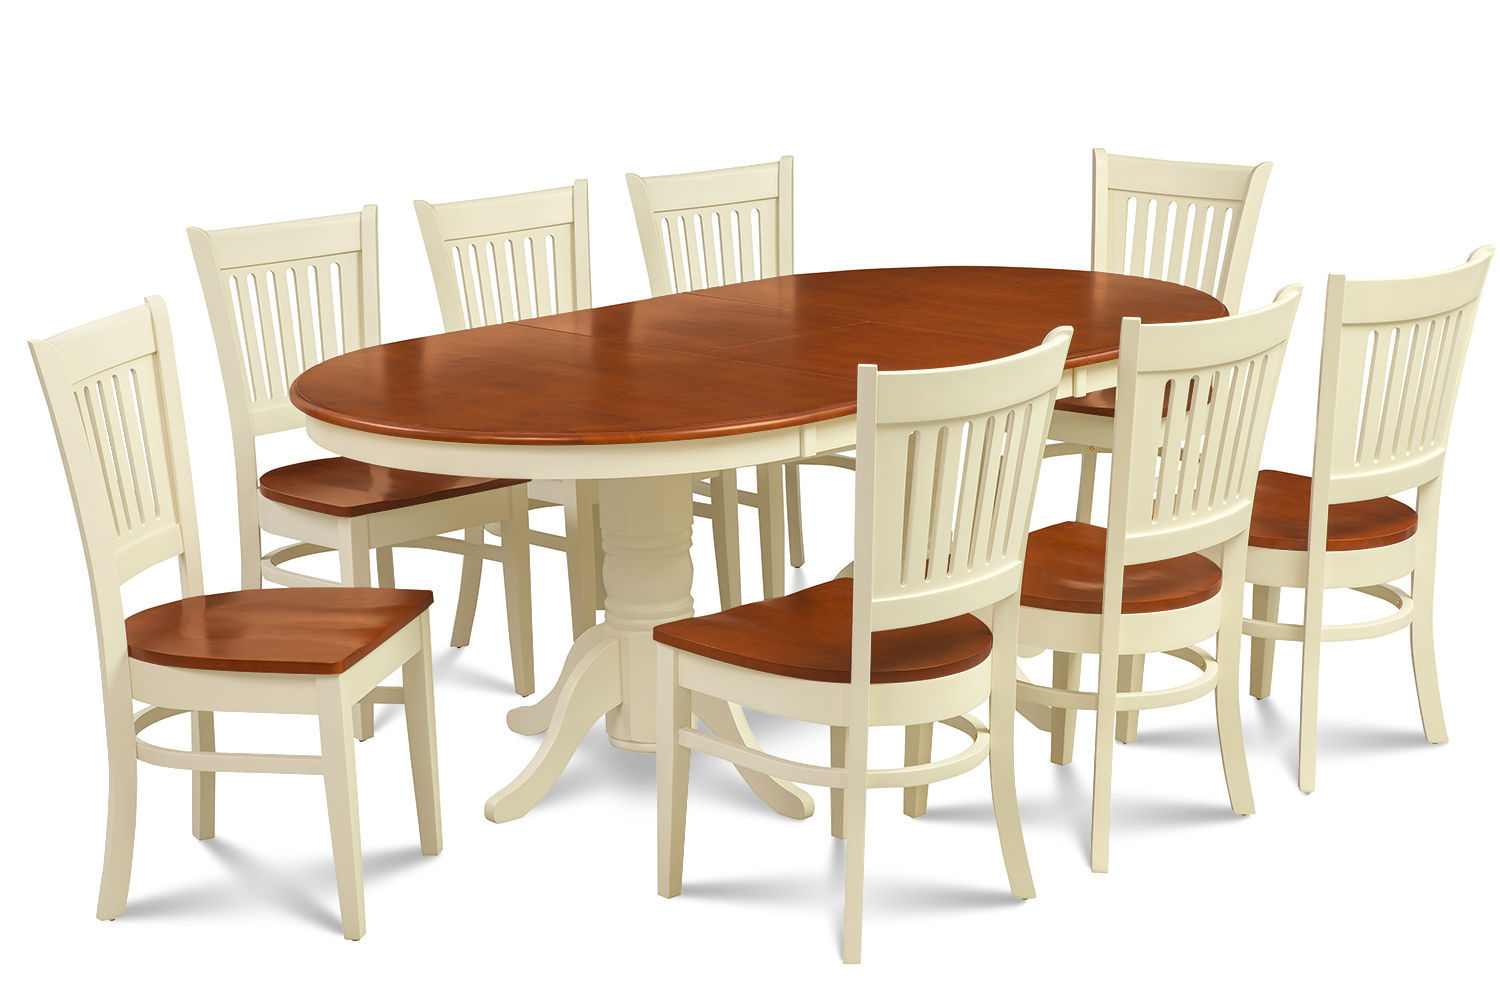 9 piece oval dining room table set w 8 wooden chair in for Jardin 8 piece dining set